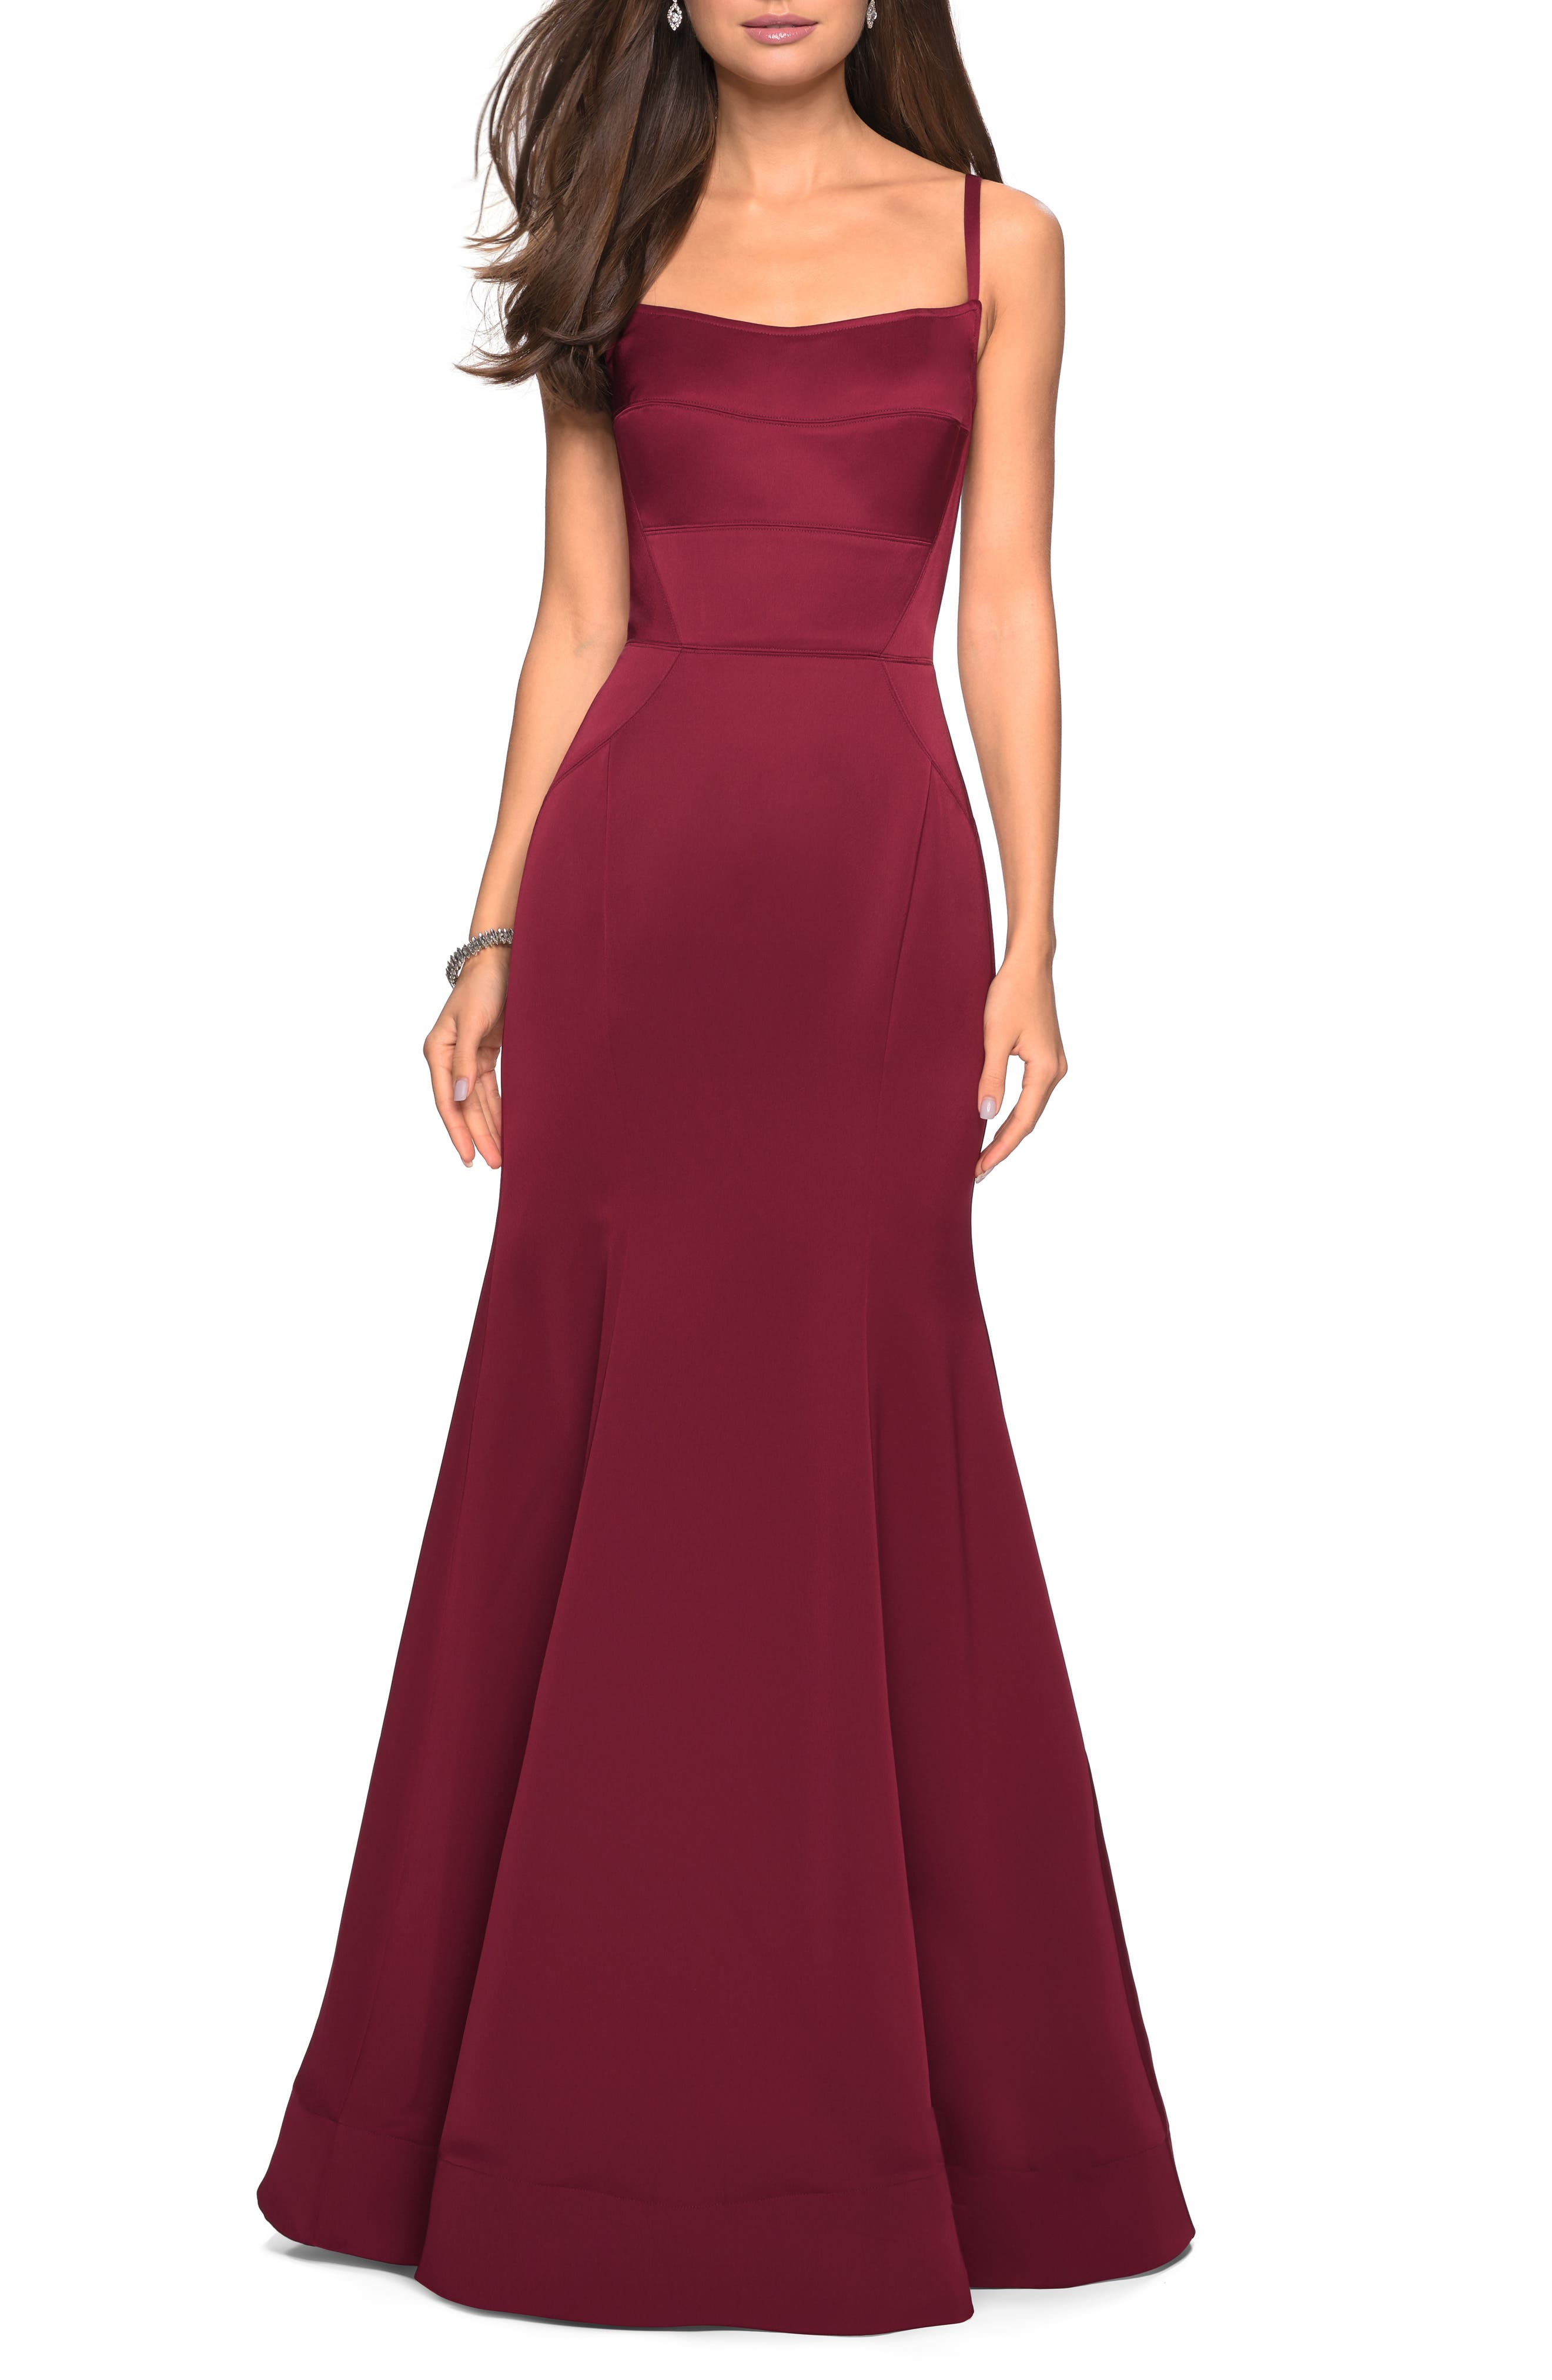 La Femme Structured Thick Jersey Trumpet Evening Dress